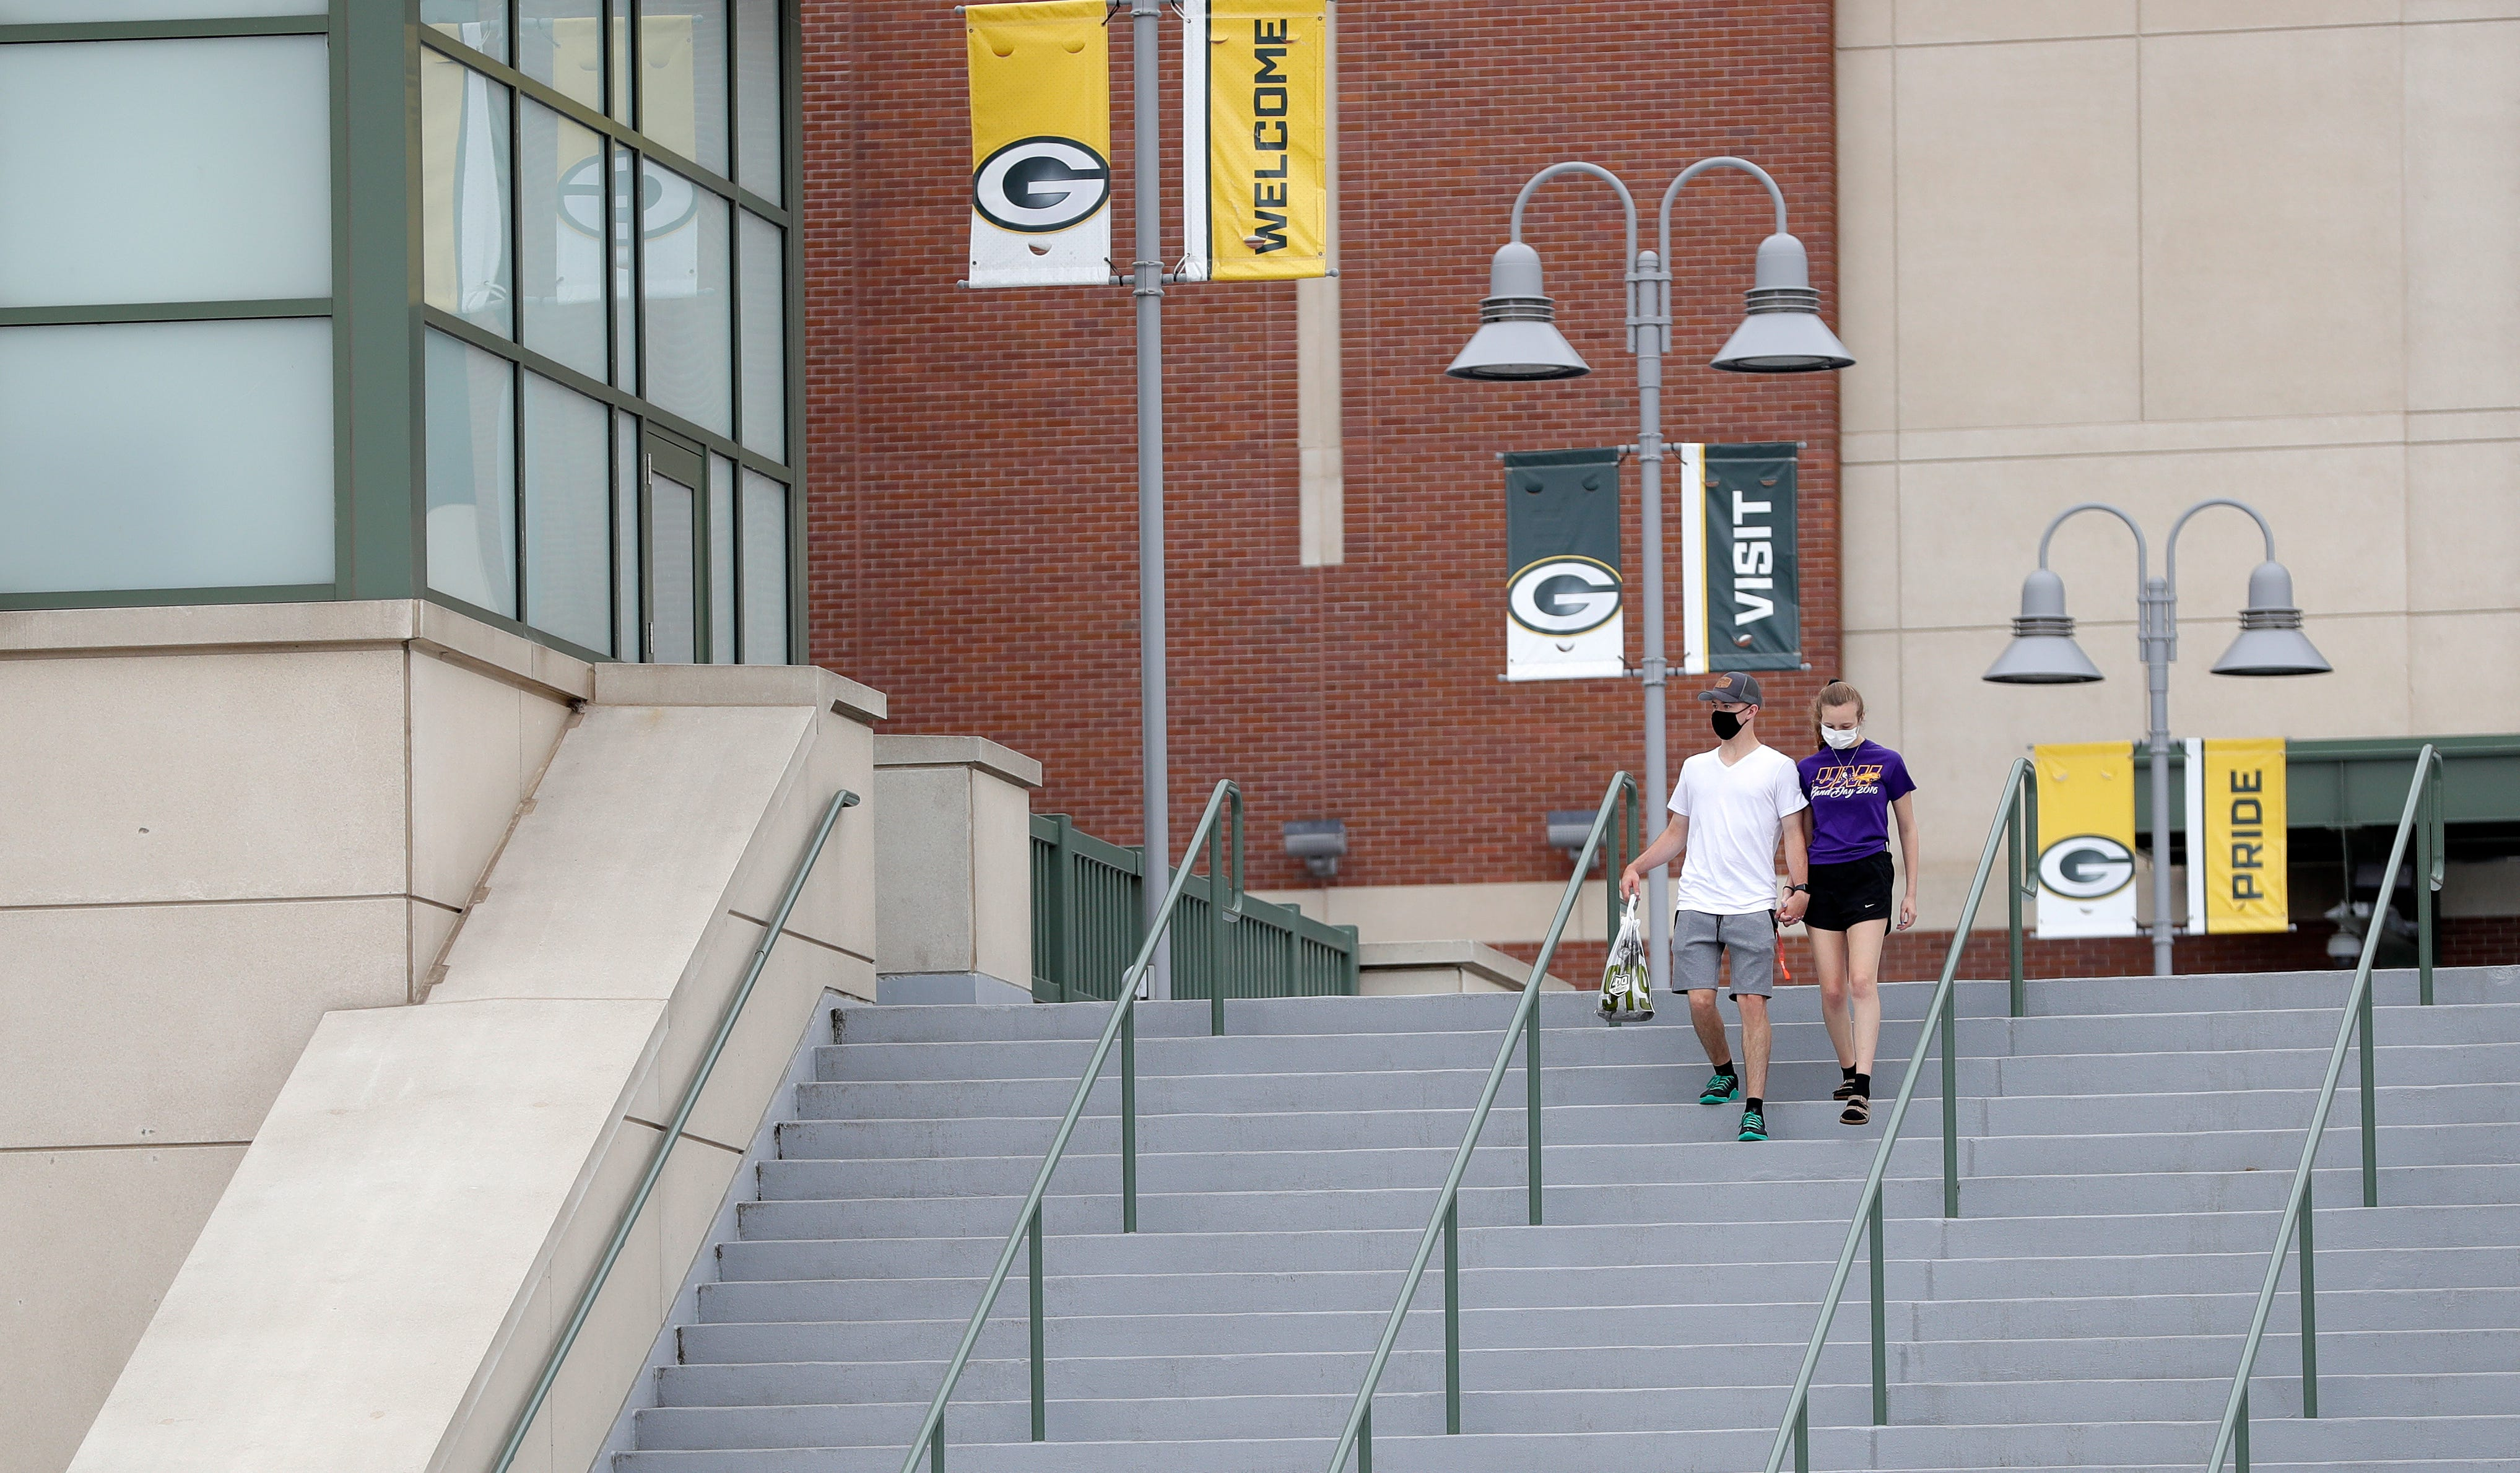 A couple wearing masks walks down the steps at Lambeau Field on Aug. 15, 2020, in Green Bay, Wis. The Green Bay Packers held their first practice of training camp at Ray Nitschke Field, but with no public viewing due to the coronavirus pandemic, only a few fans visited the area.